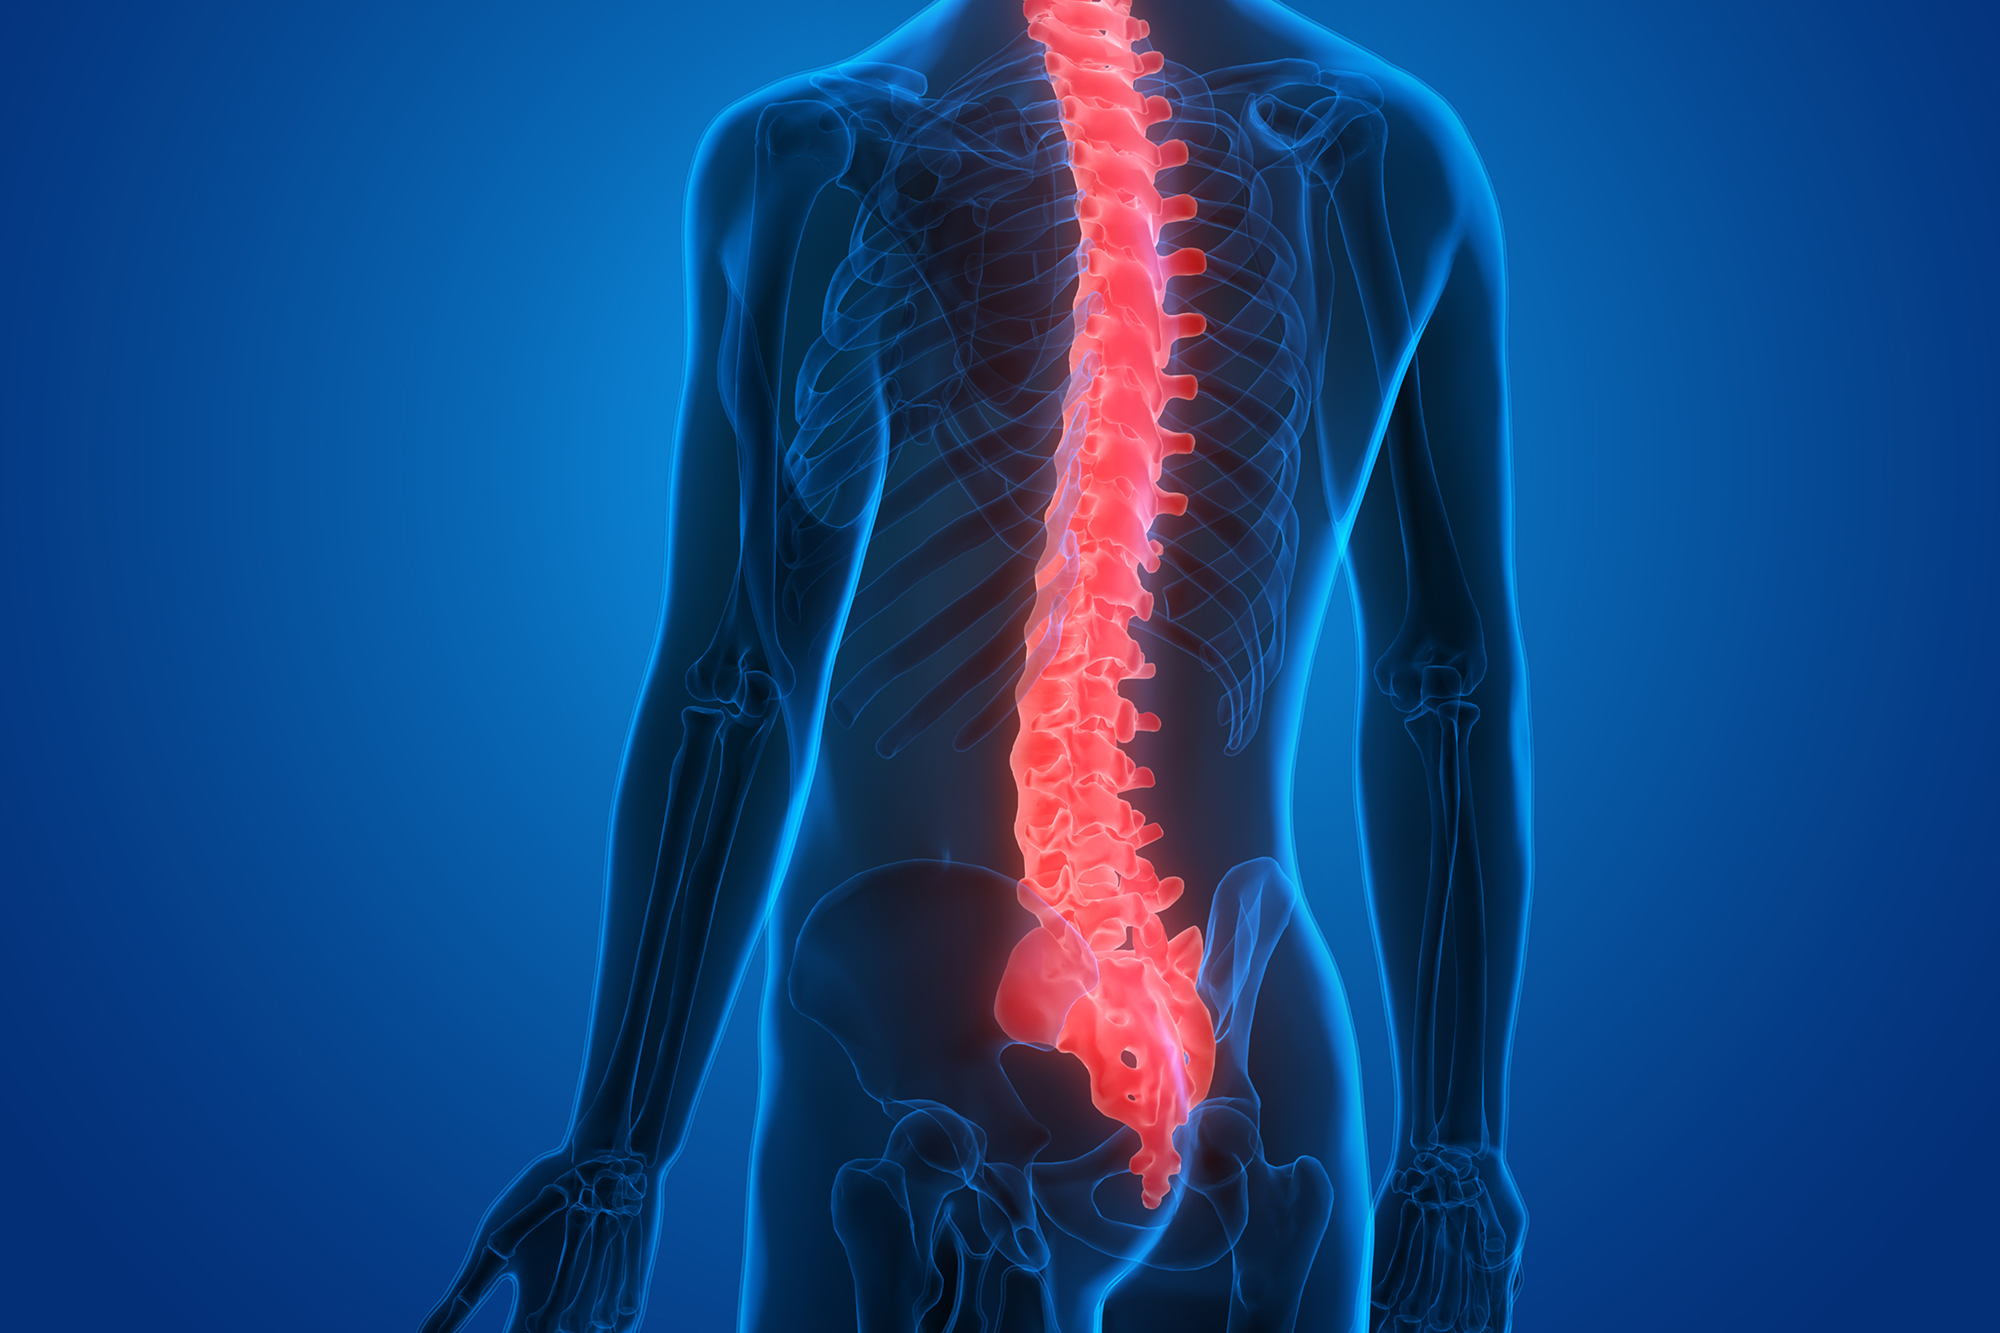 Spinal Cord Injury Treatment In Iran